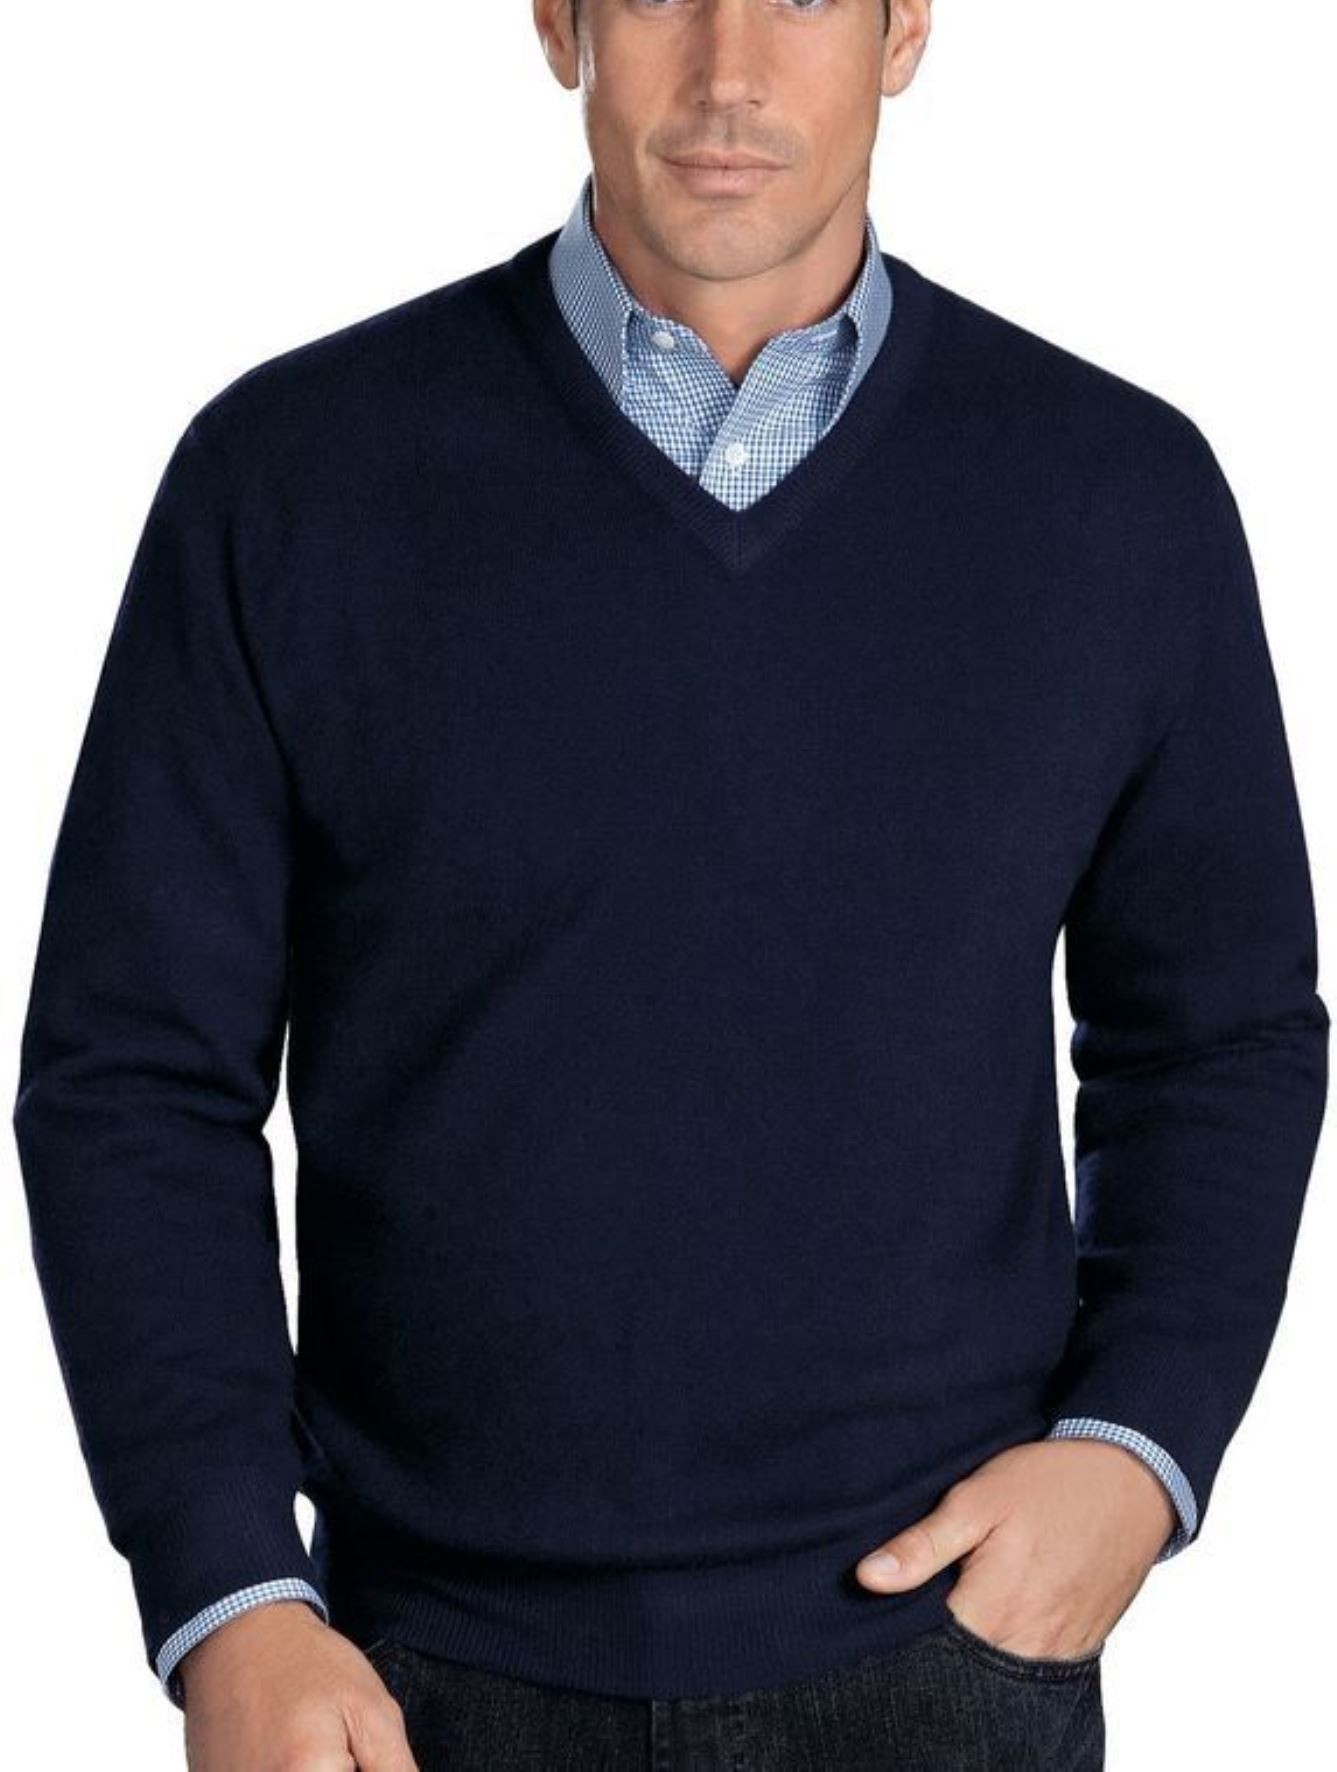 Navy Men's V-Neck Sweaters - 100% Cashmere Made in Scotland